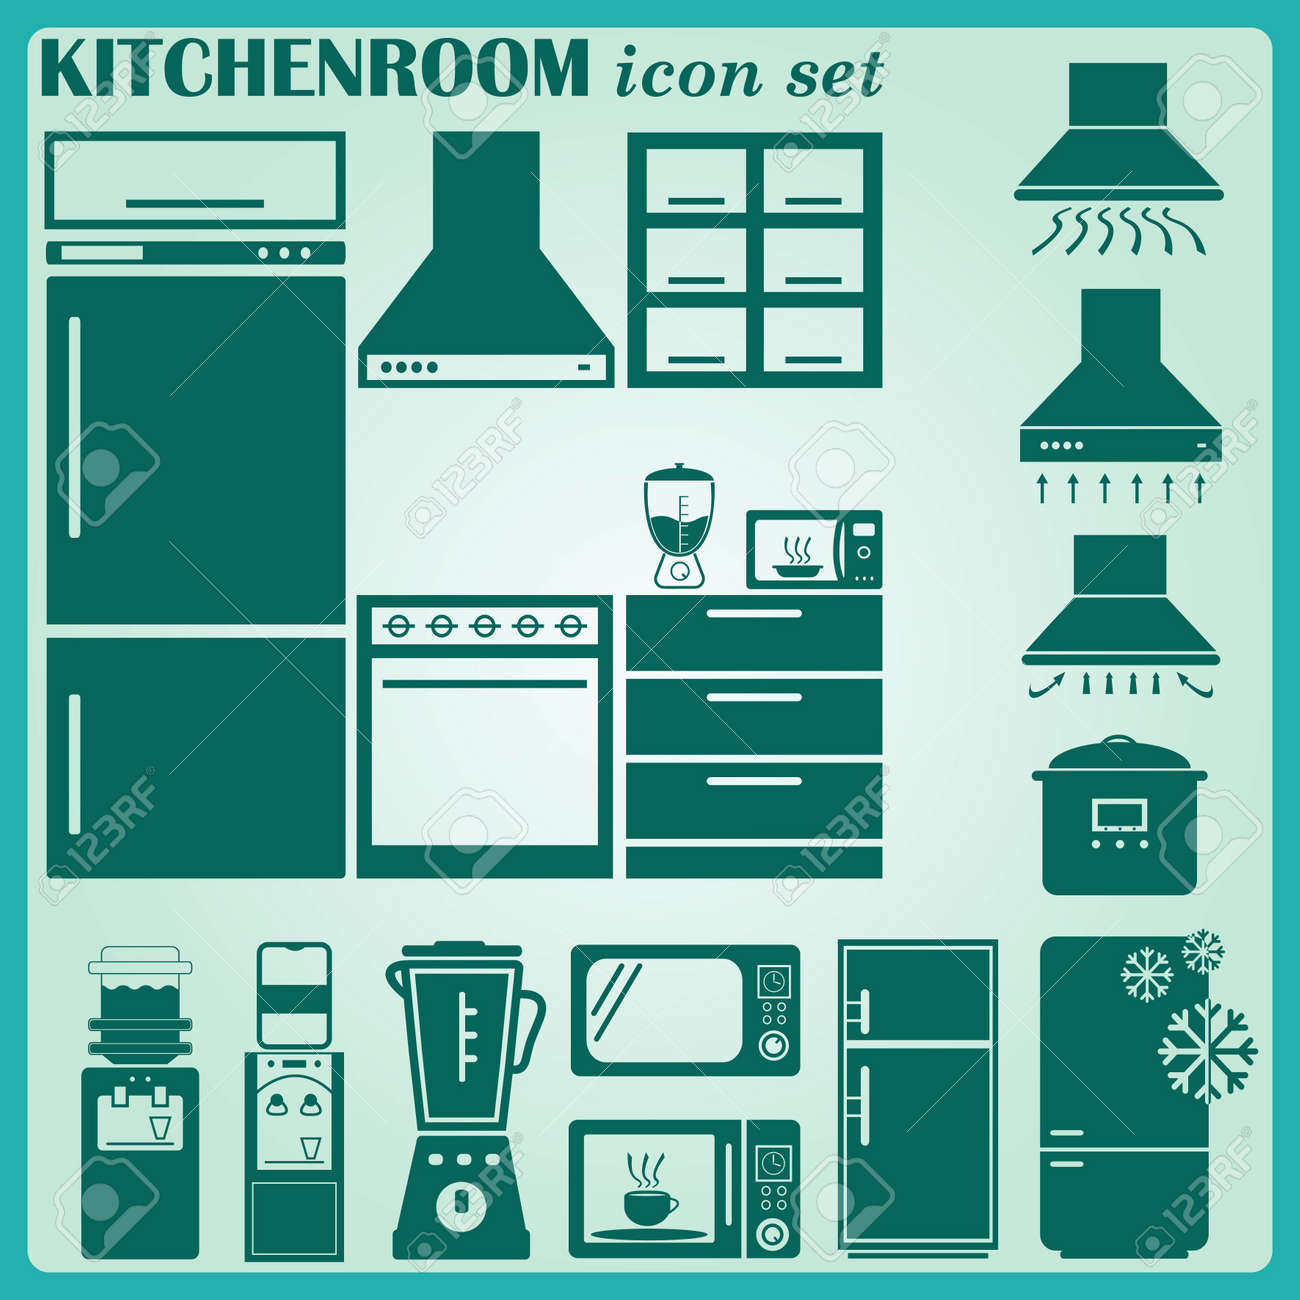 home interior design icon, kitchen icon, dining icon set, vector